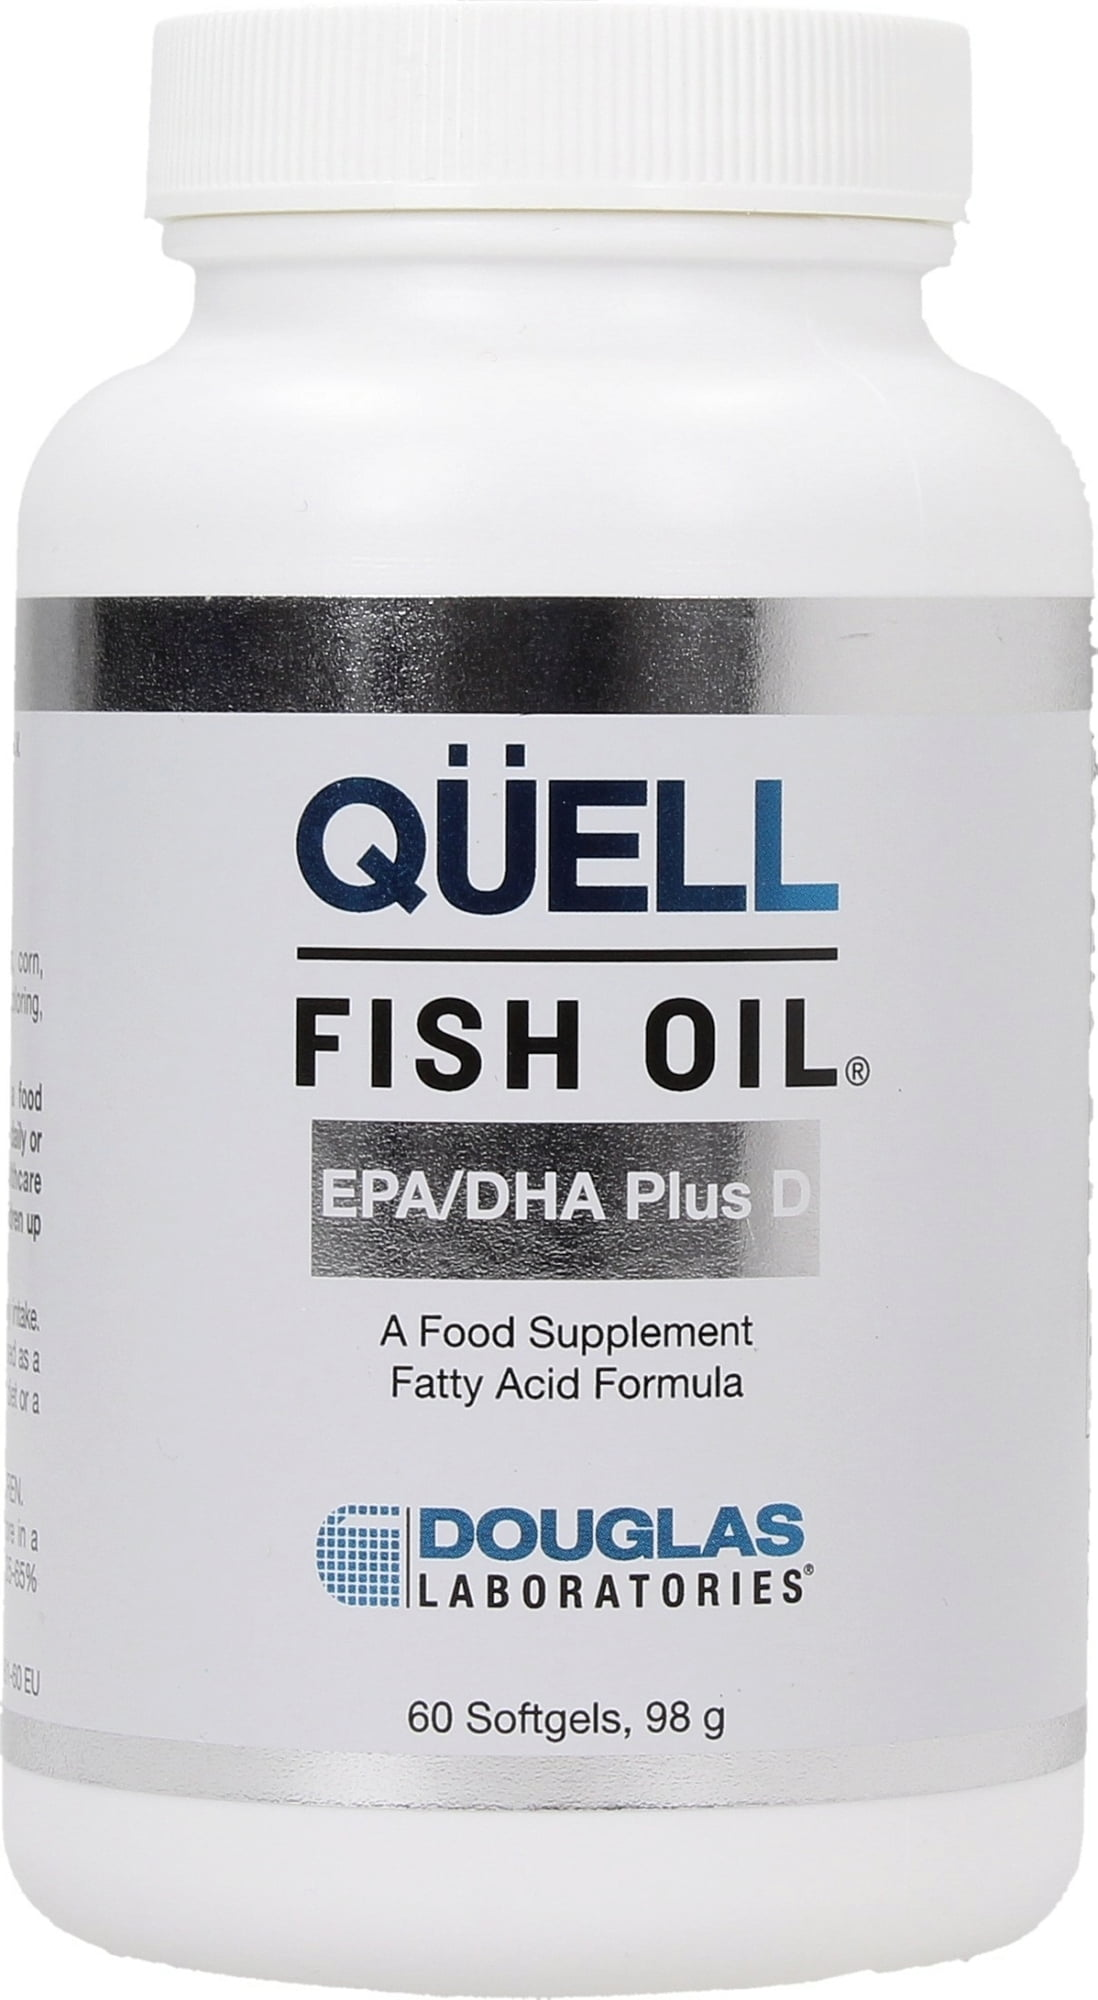 Douglas Laboratories QÜELL Fish Oil™ High EPA + DHA mit Vitamin D3 - 60 Softgels von Douglas Laboratories